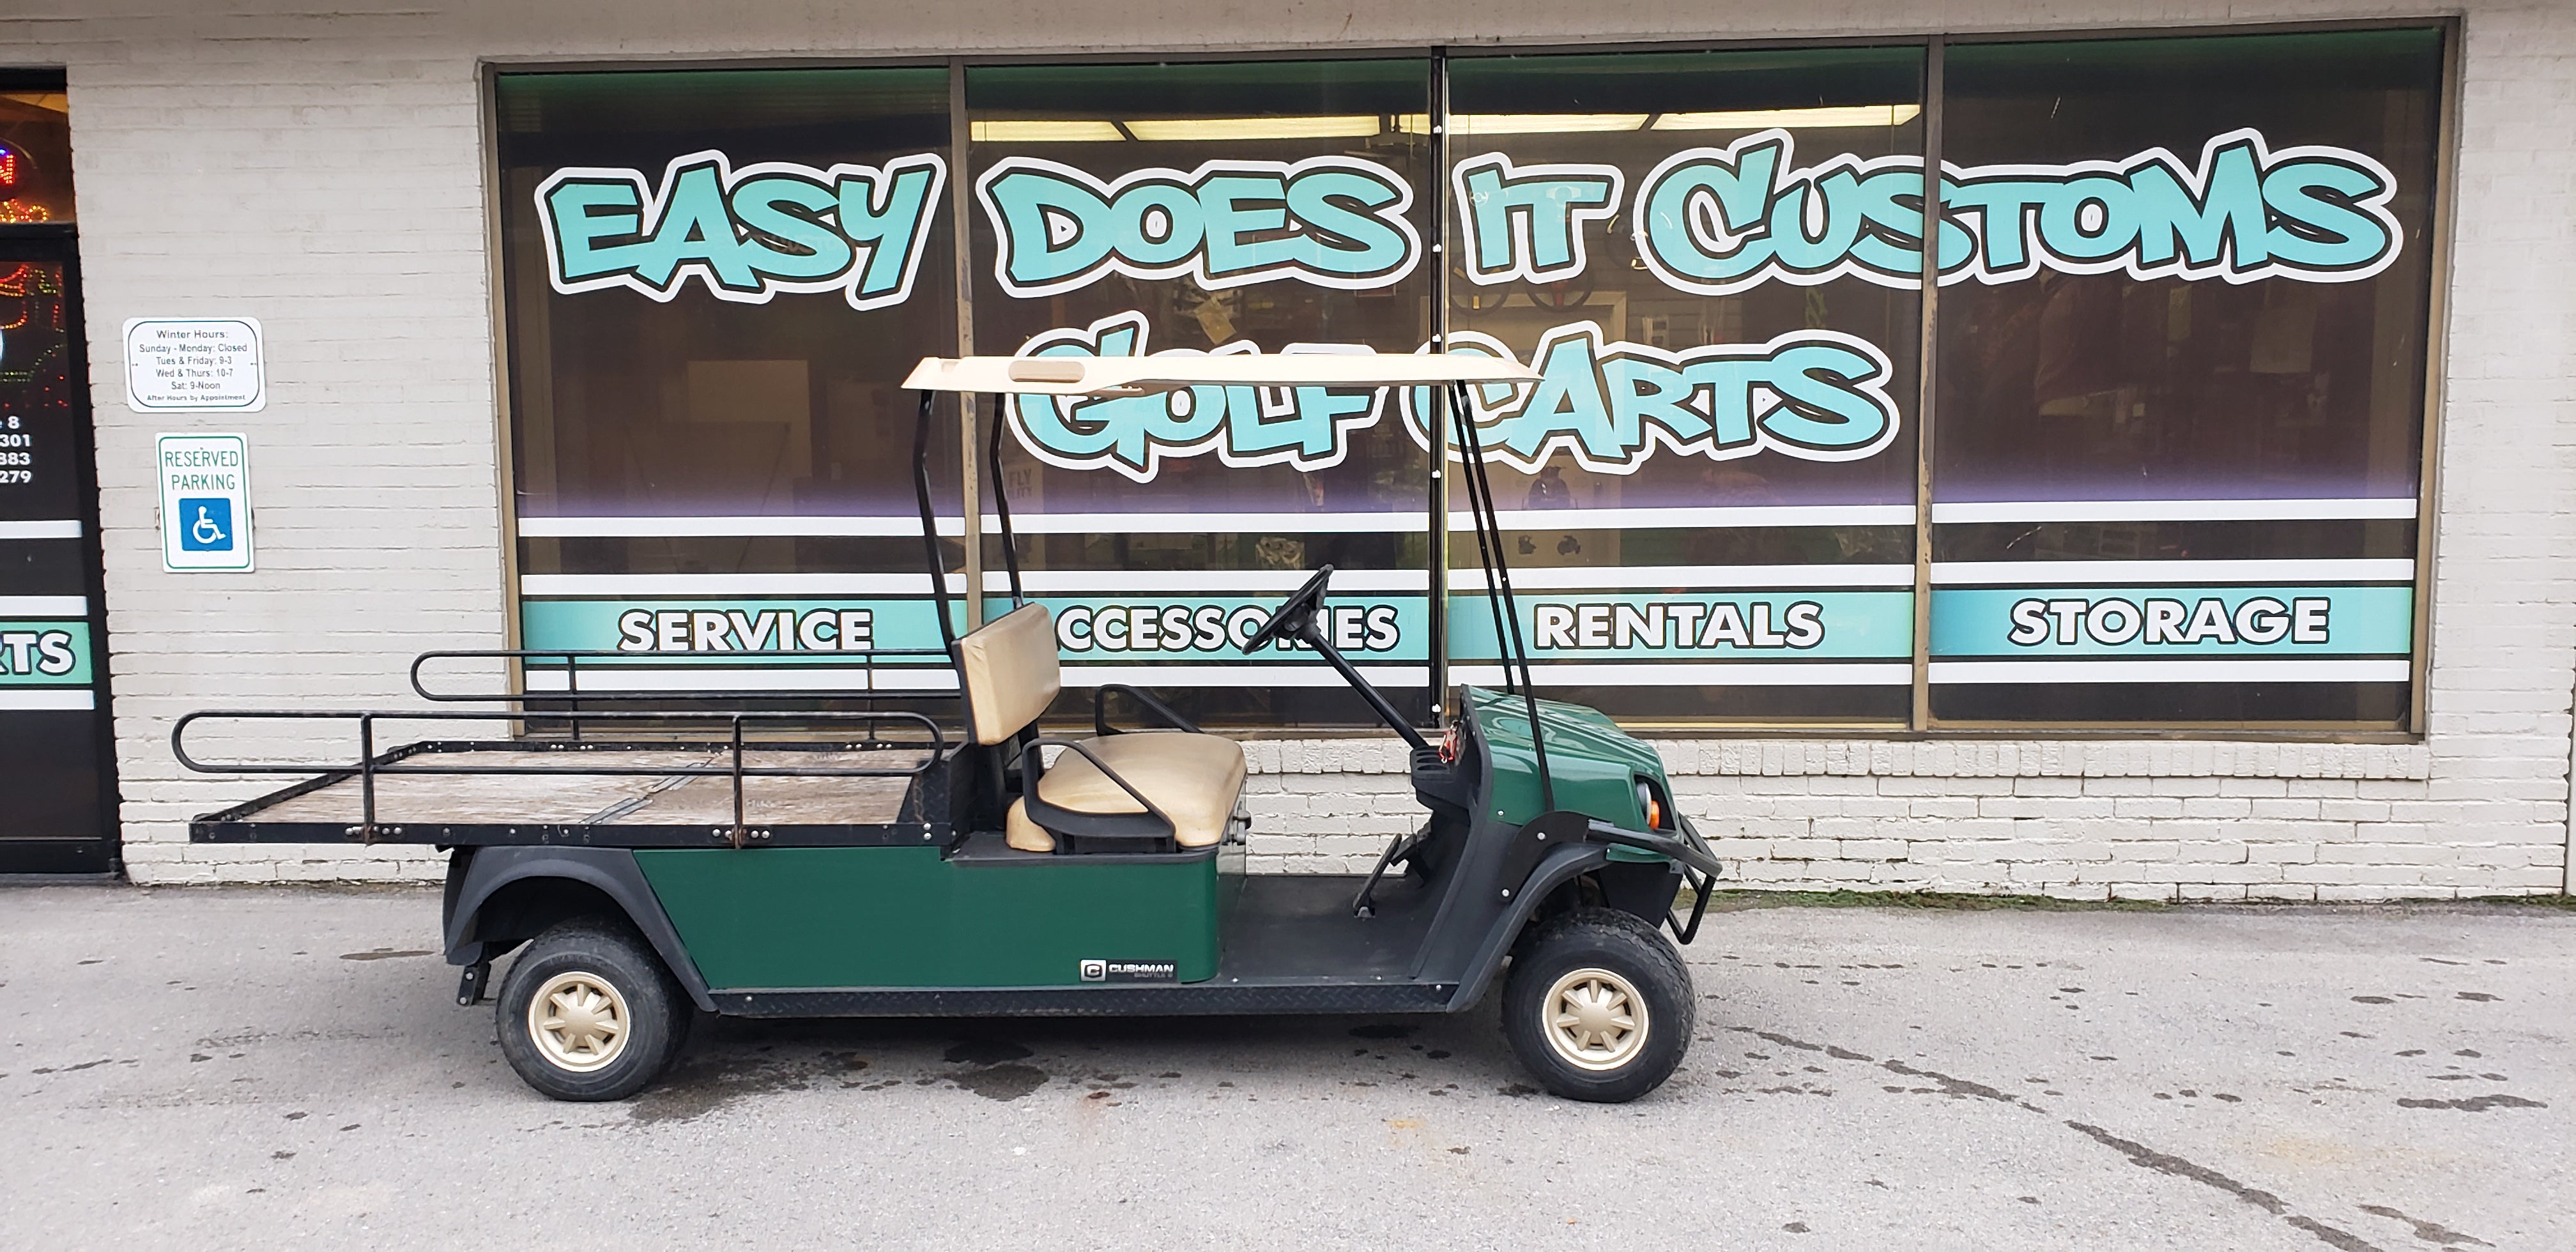 2013 Cushman Gas Hauler Utility with Flat Bed Golf Cart